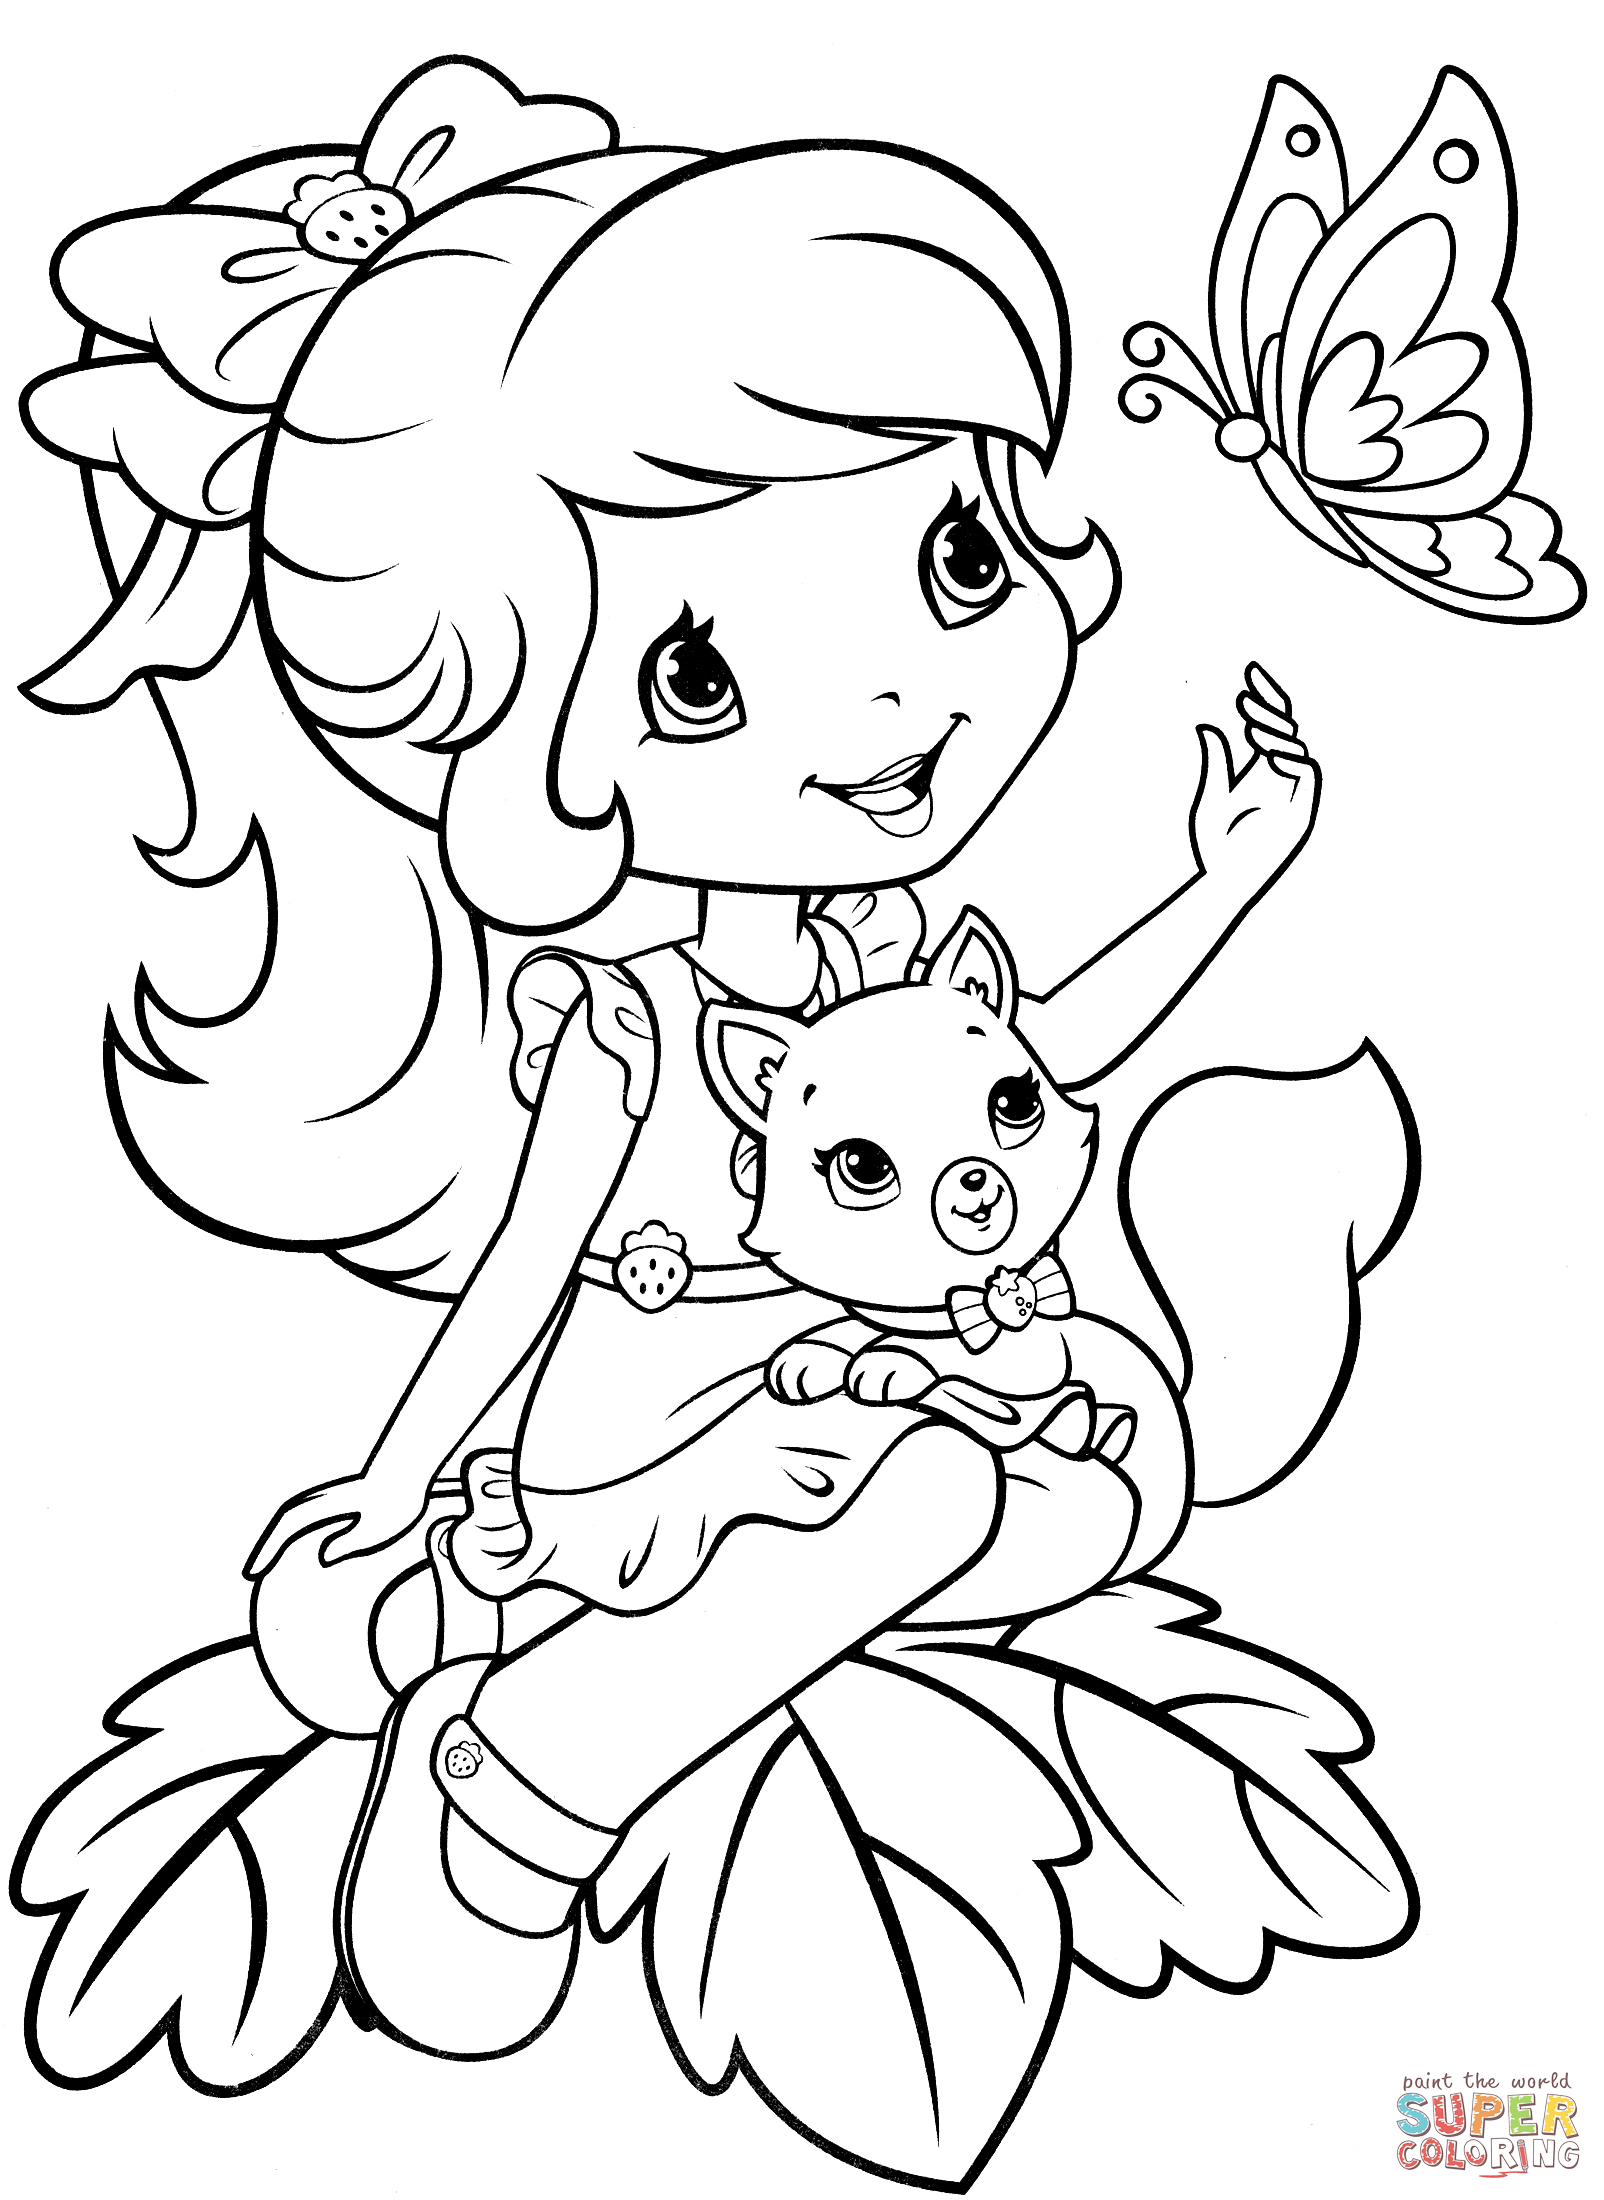 21+ Pretty Photo of Strawberry Shortcake Coloring Pages